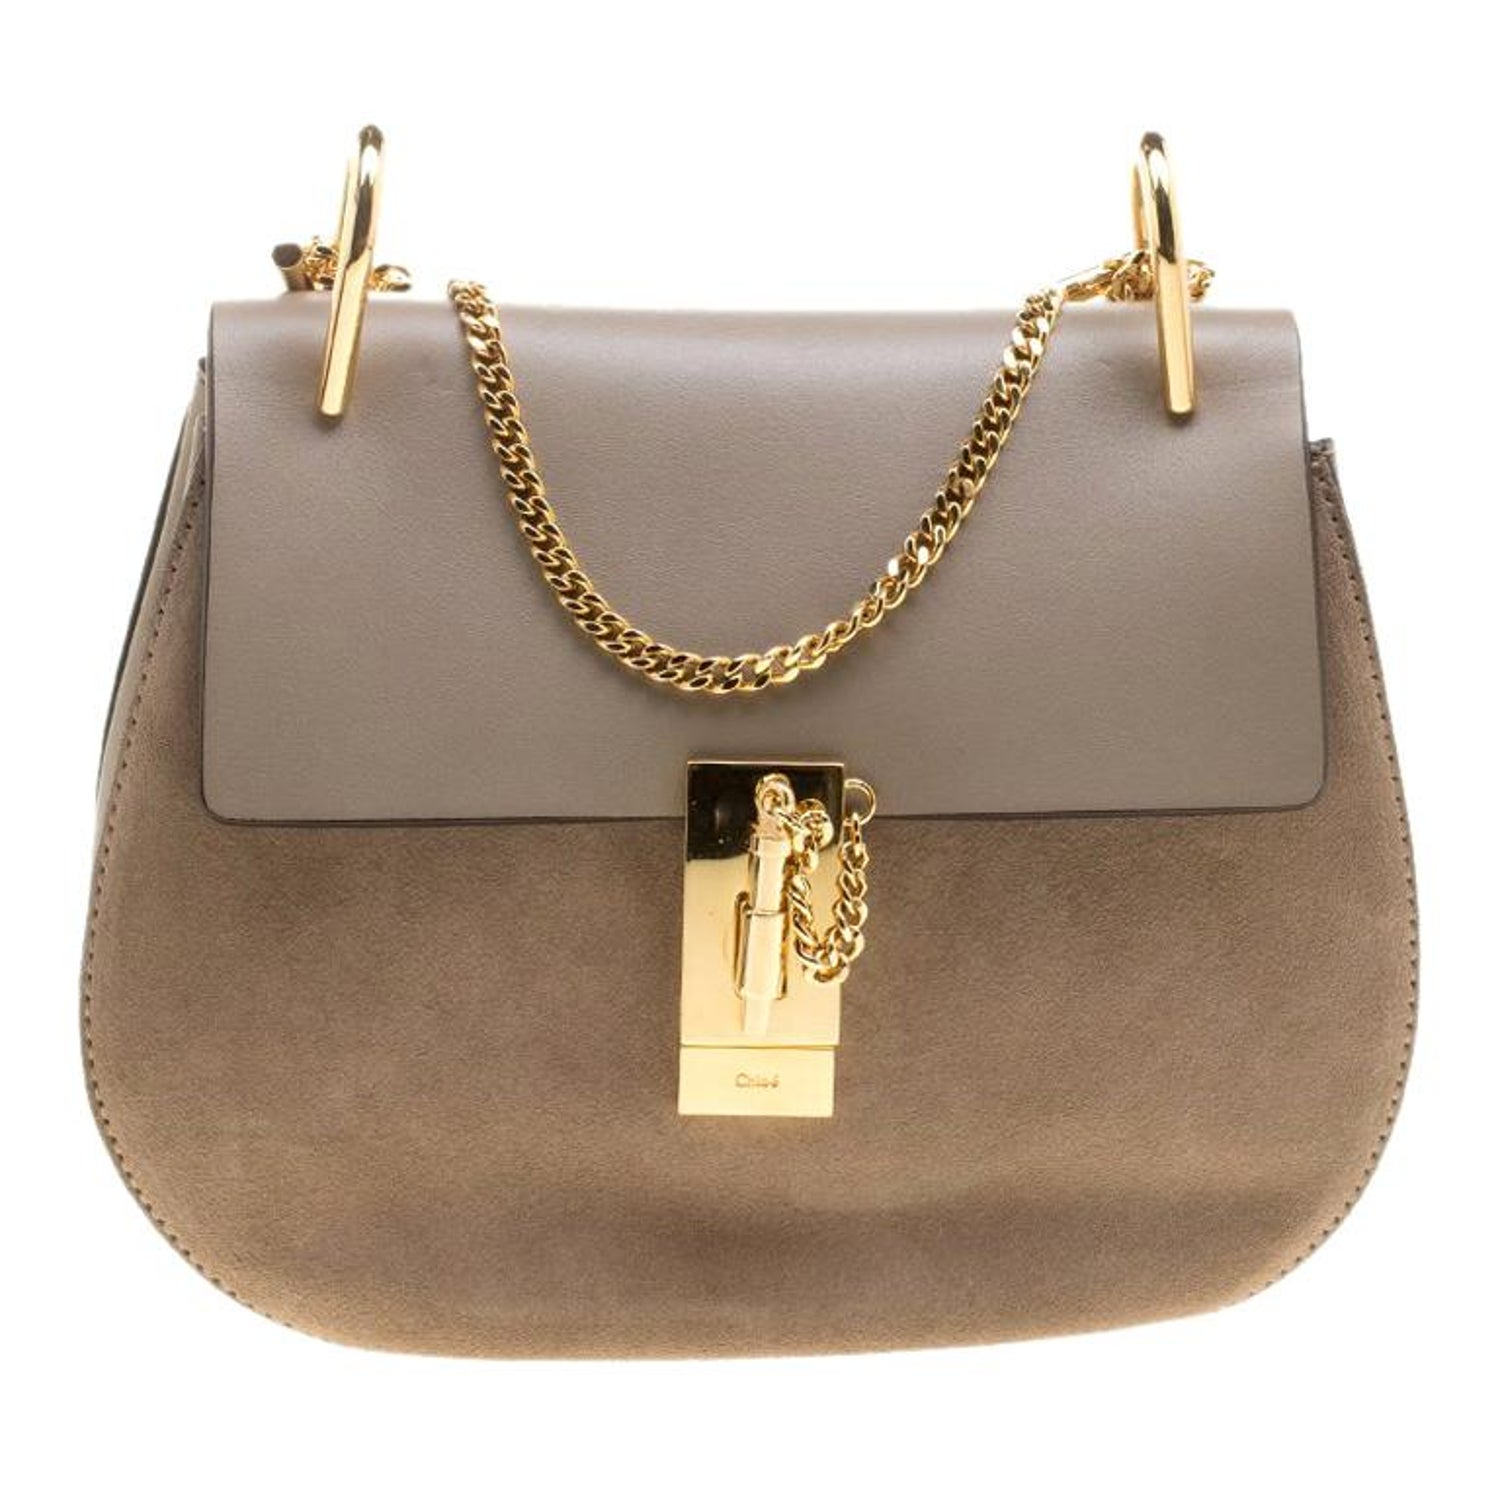 c8ef9ffde5388 Chloe Motty Grey Leather Medium Drew Shoulder Bag For Sale at 1stdibs